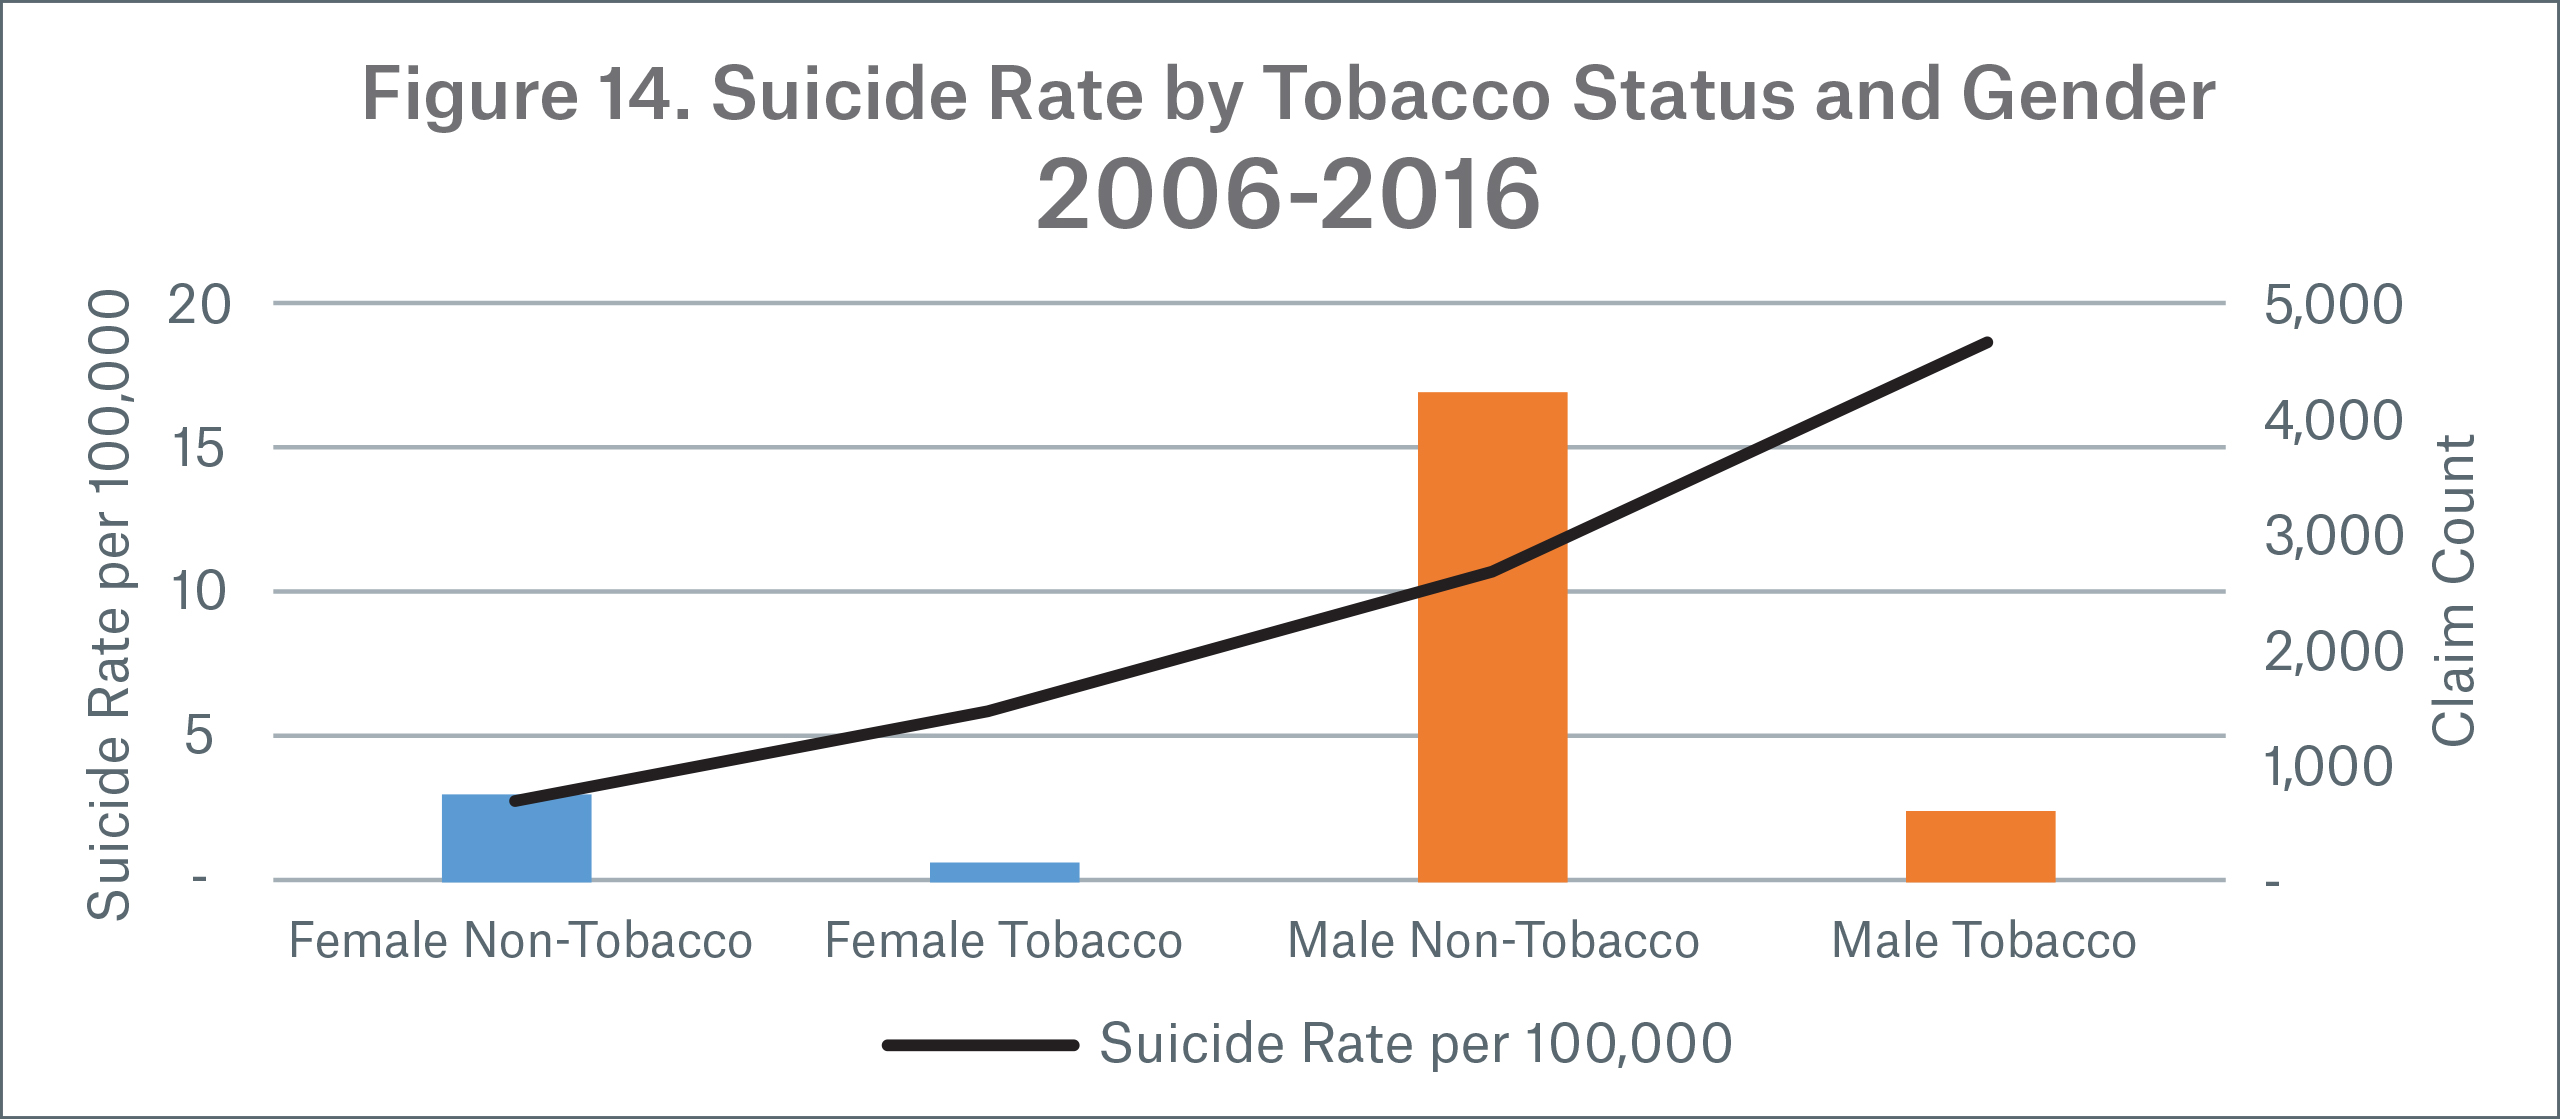 Figure 14 Image Suicide Rate by Tobacco Statue and Gender